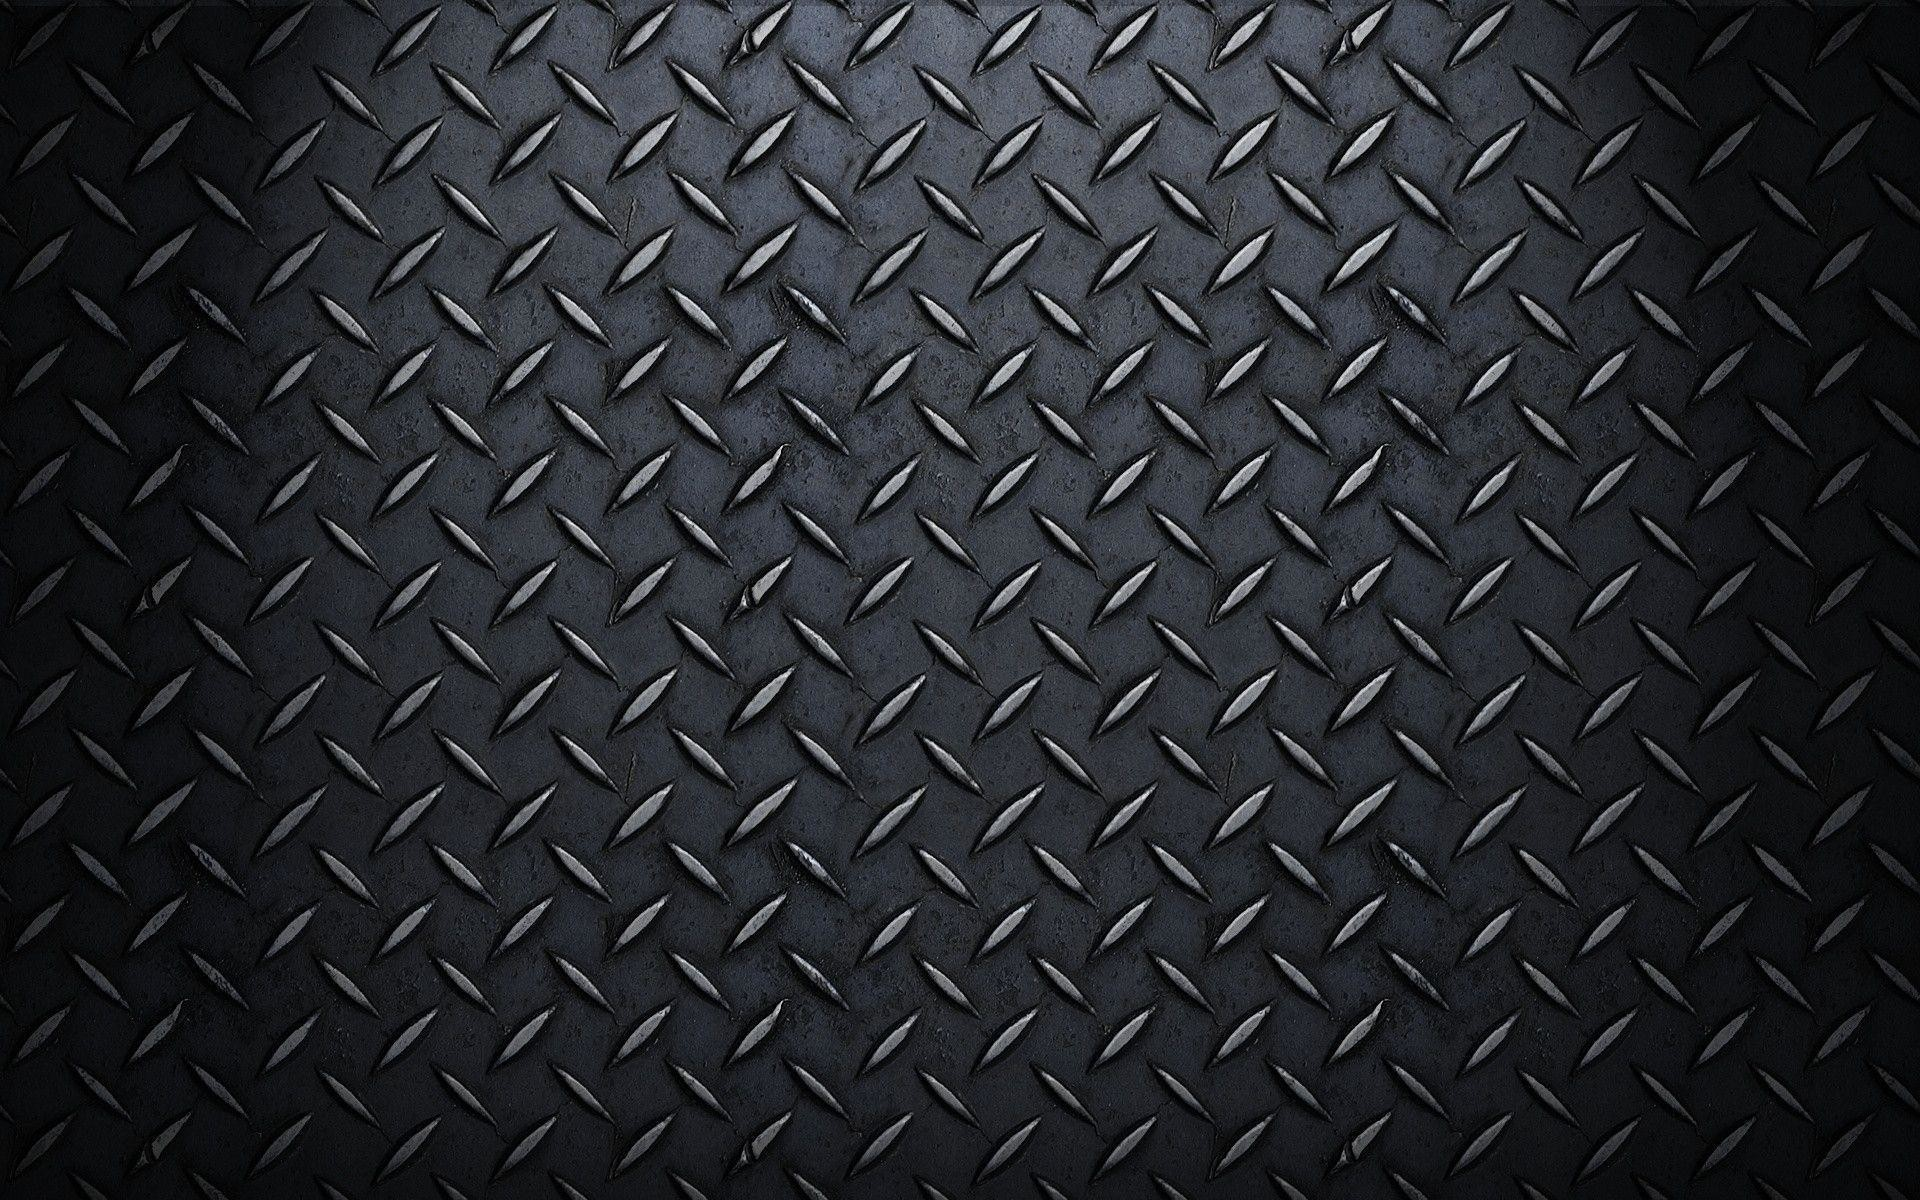 Plain Black Wallpaper Cool Dark Wallpaper Plain Xpx Mb Culut .